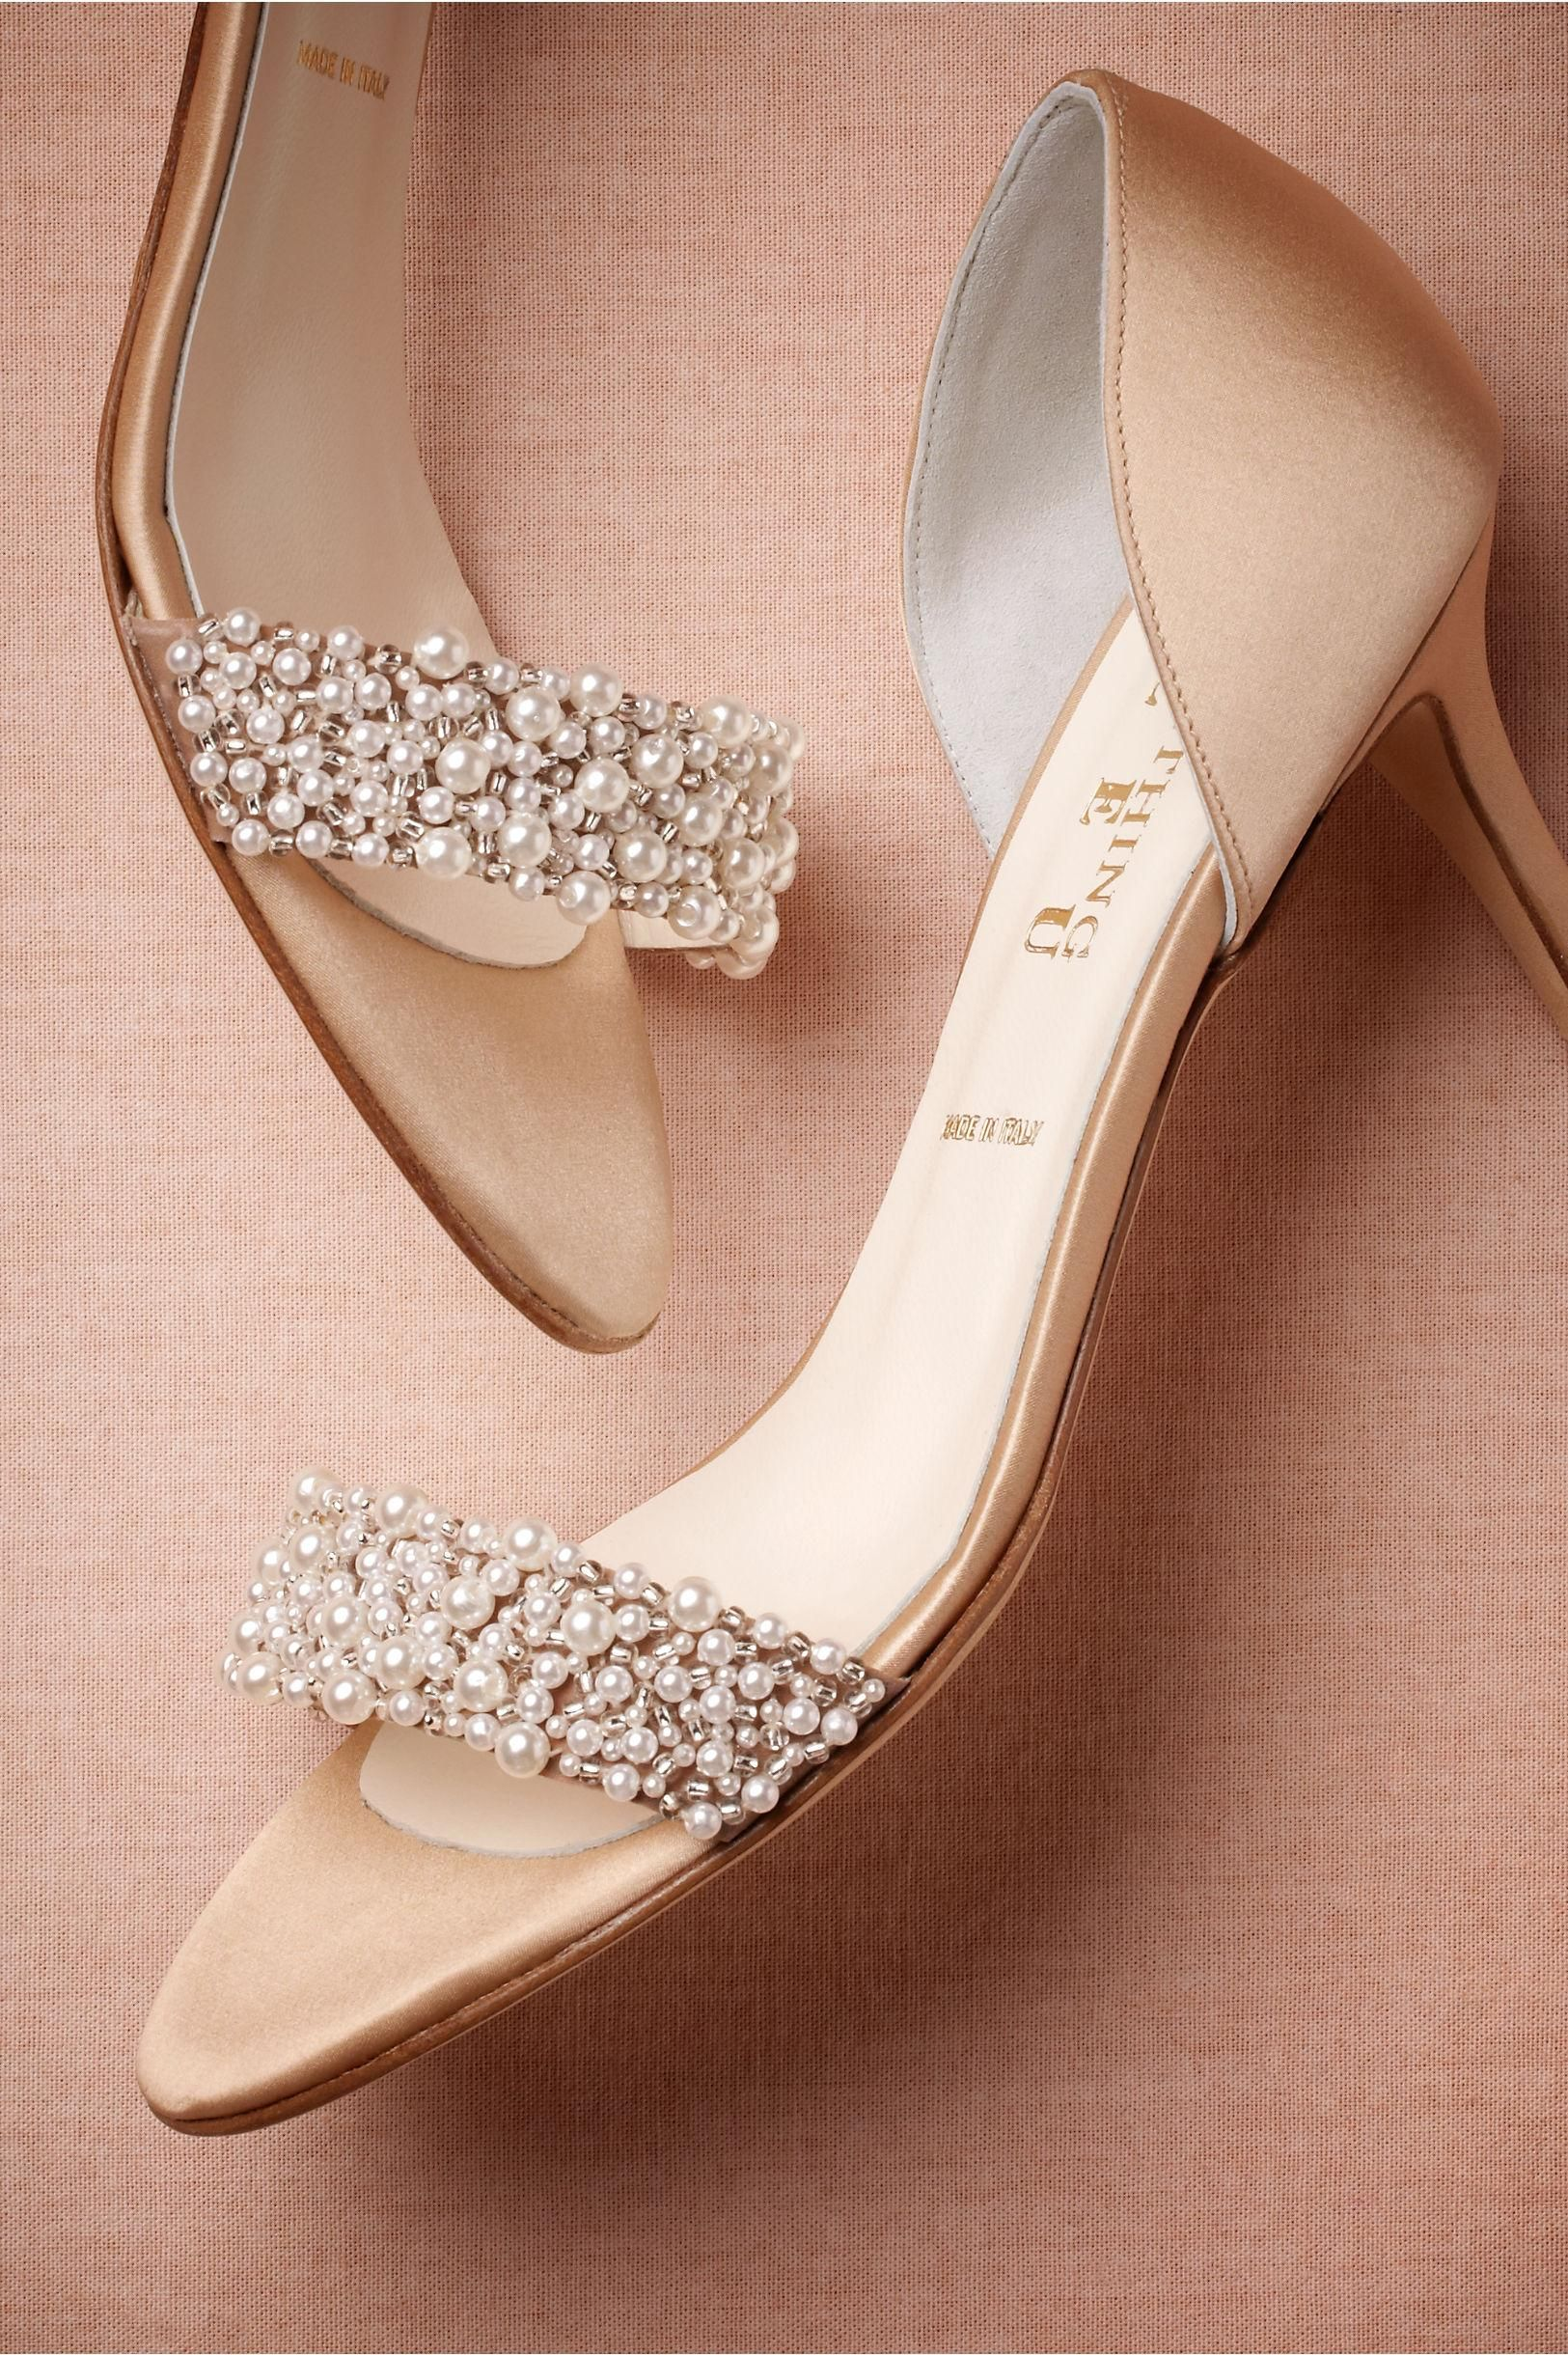 Oyster Bed Dorsays Bridal Shoes Wedding Shoes Me Too Shoes